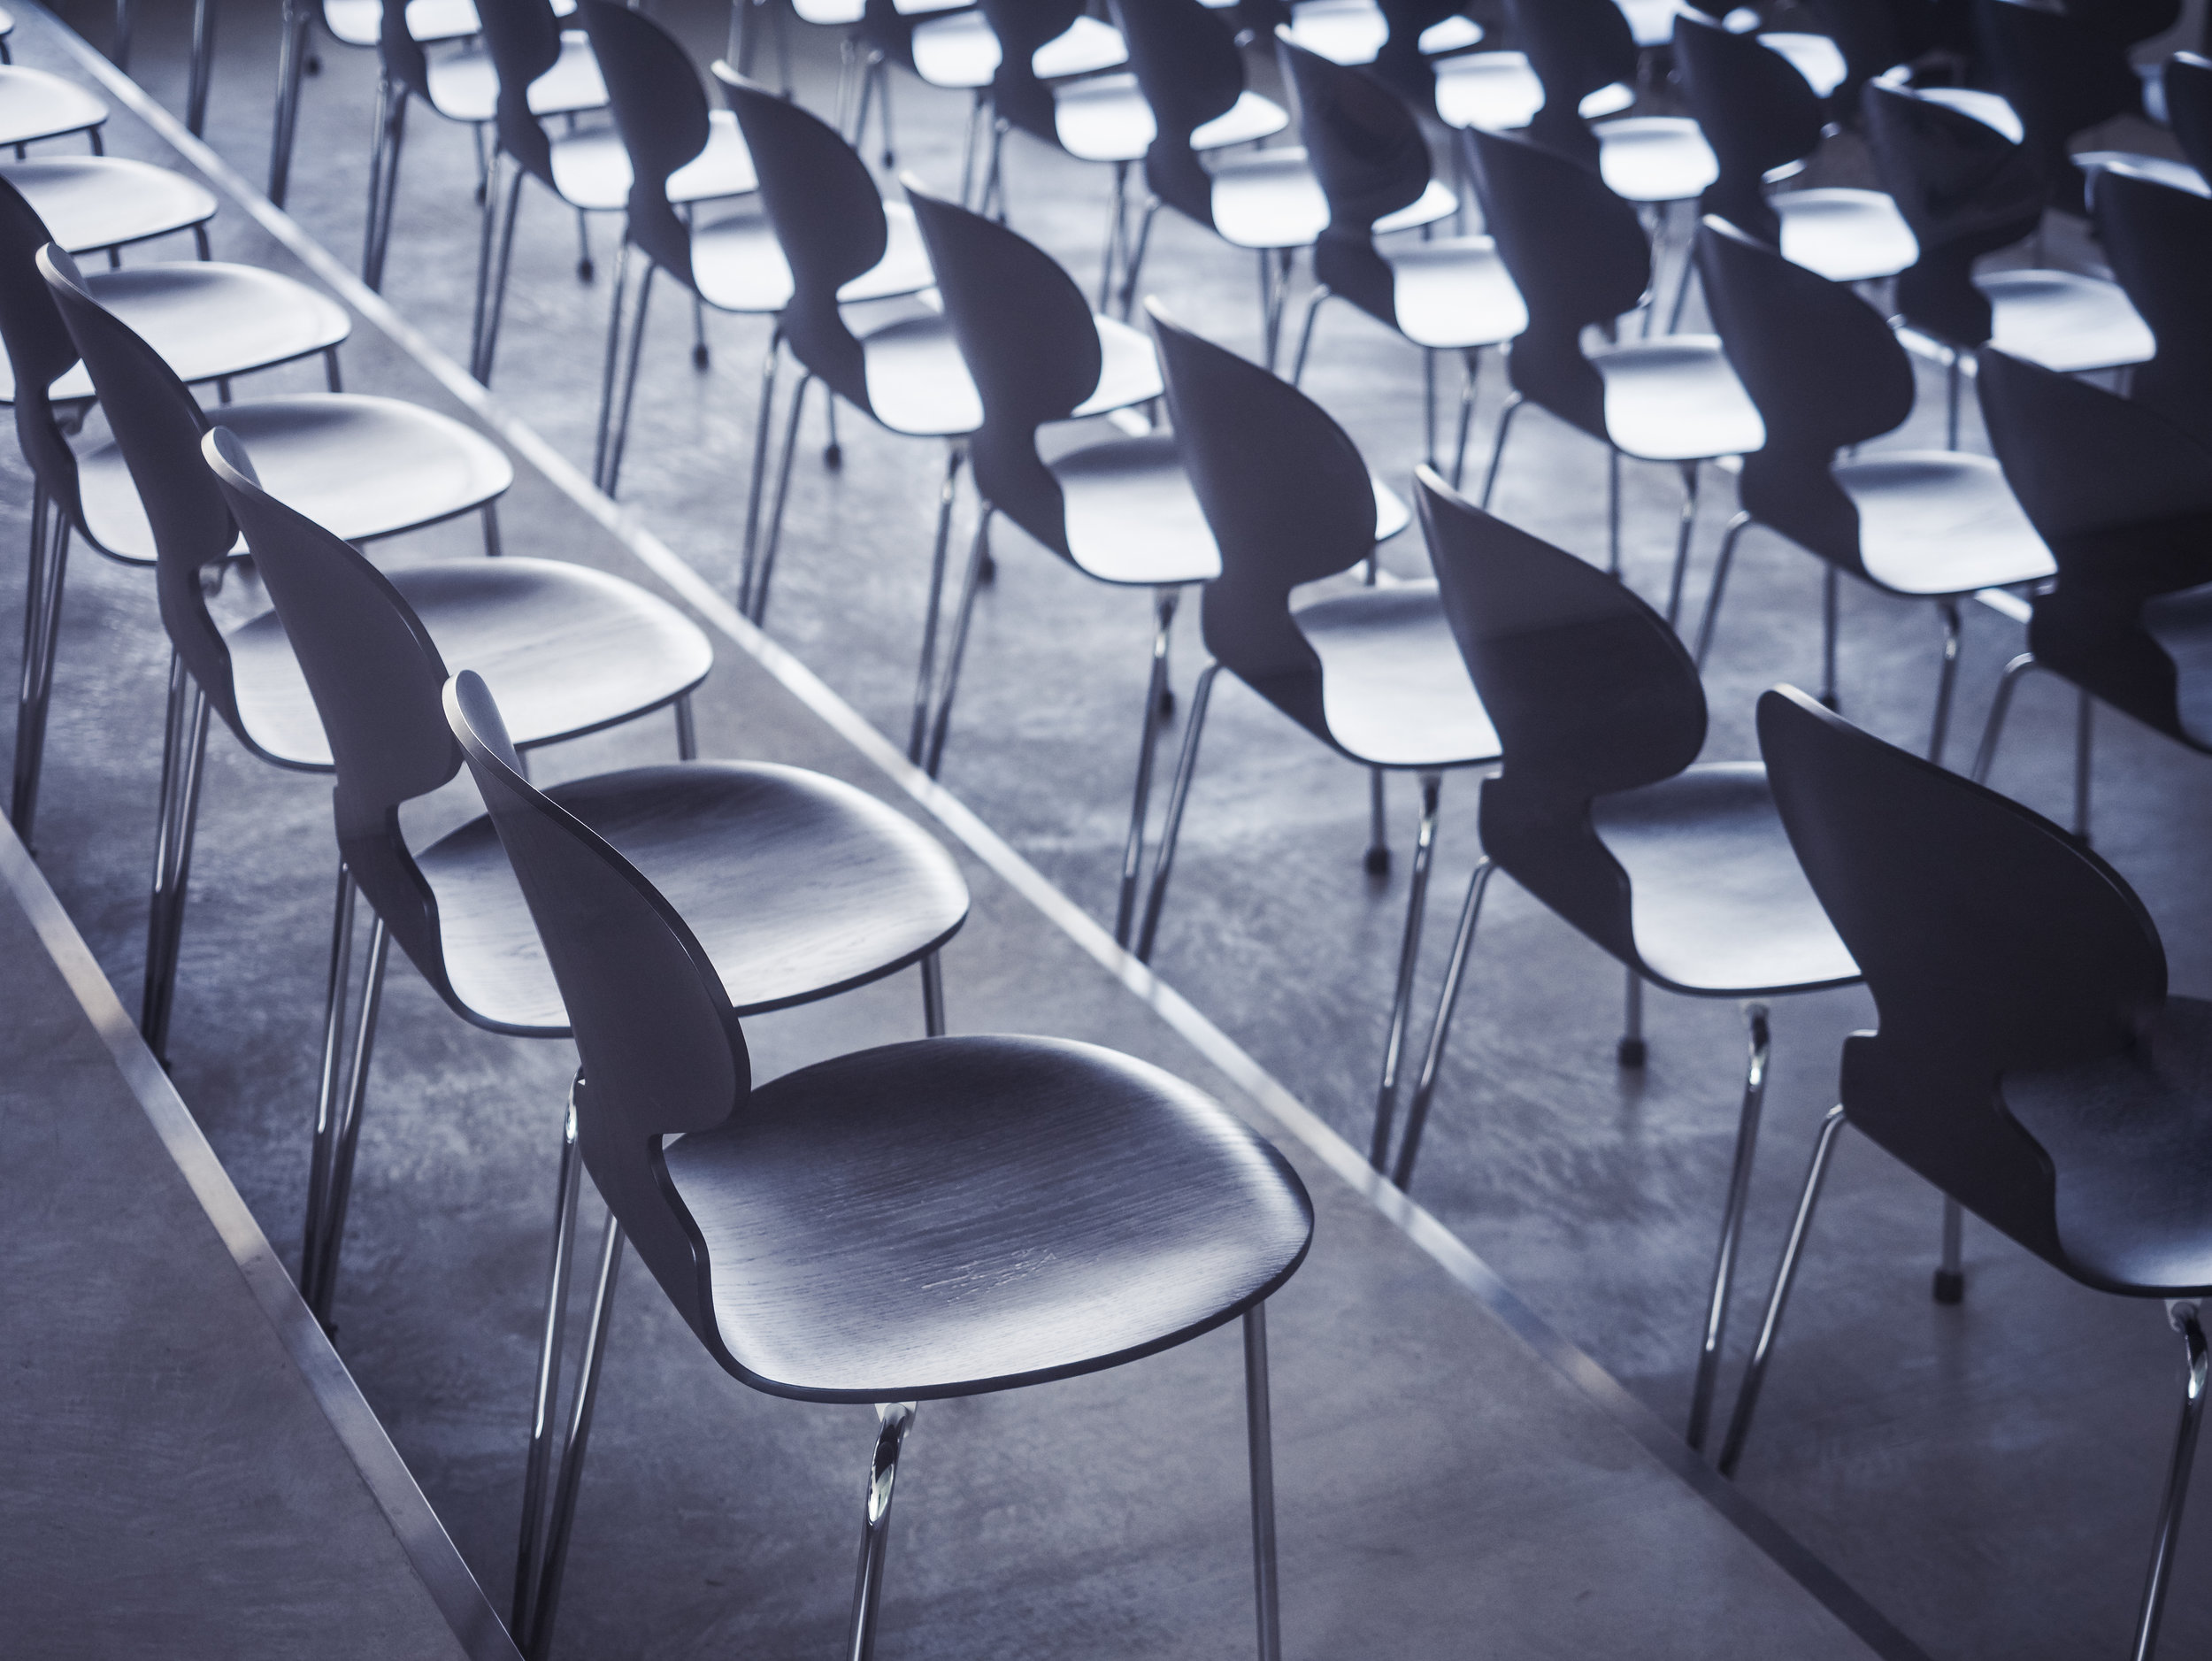 Chairs-in-row-Empty-seats-Seminar-Business-concept-694028504_4592x3448.jpeg